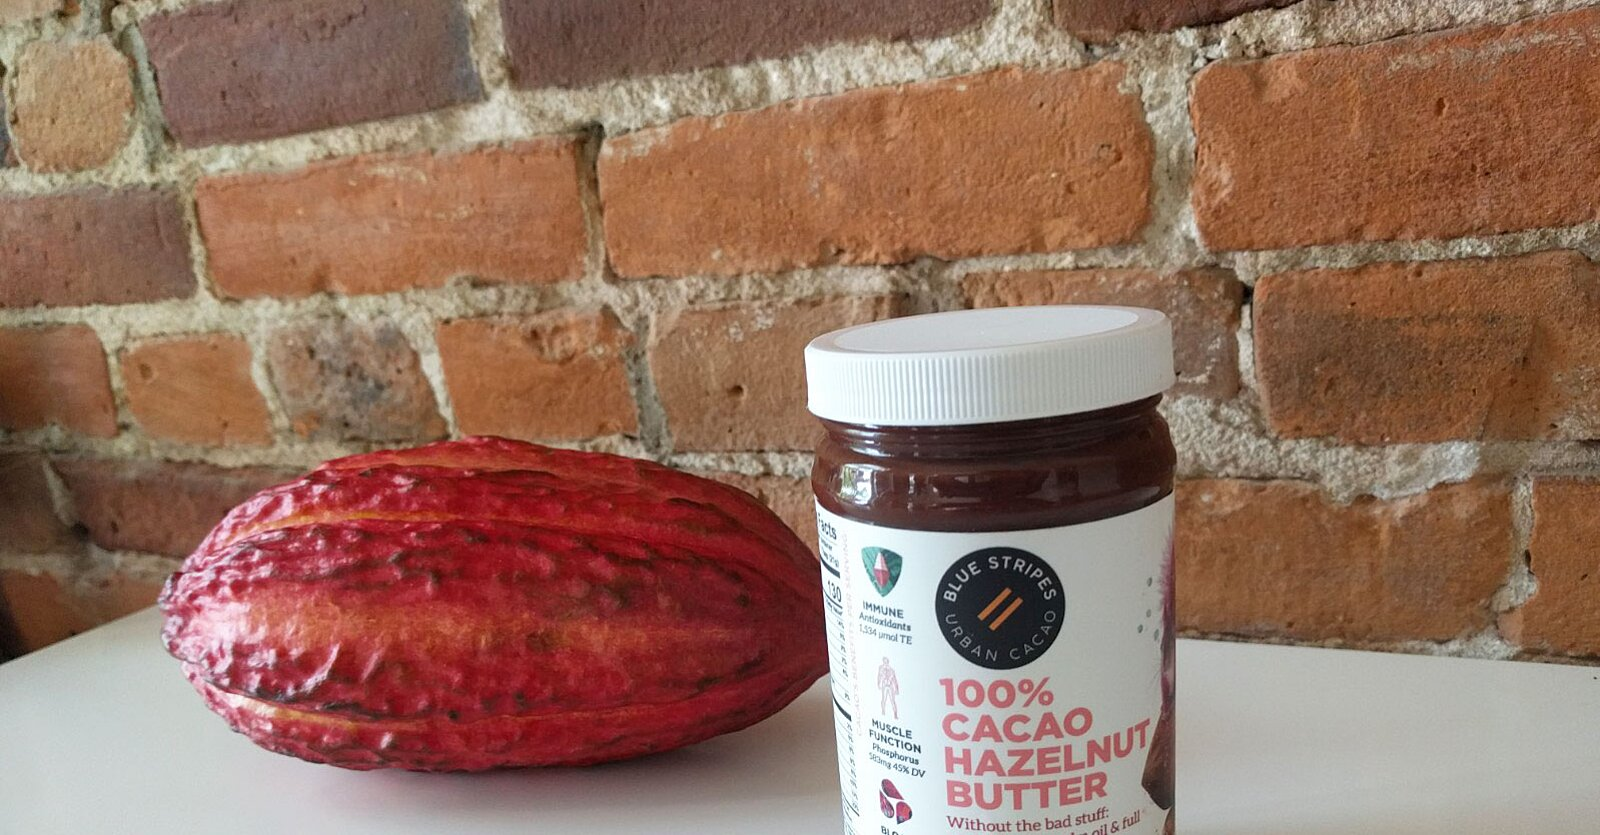 This 3-Ingredient Chocolate Spread Tastes Just Like Nutella, but It Has No Added Sugar